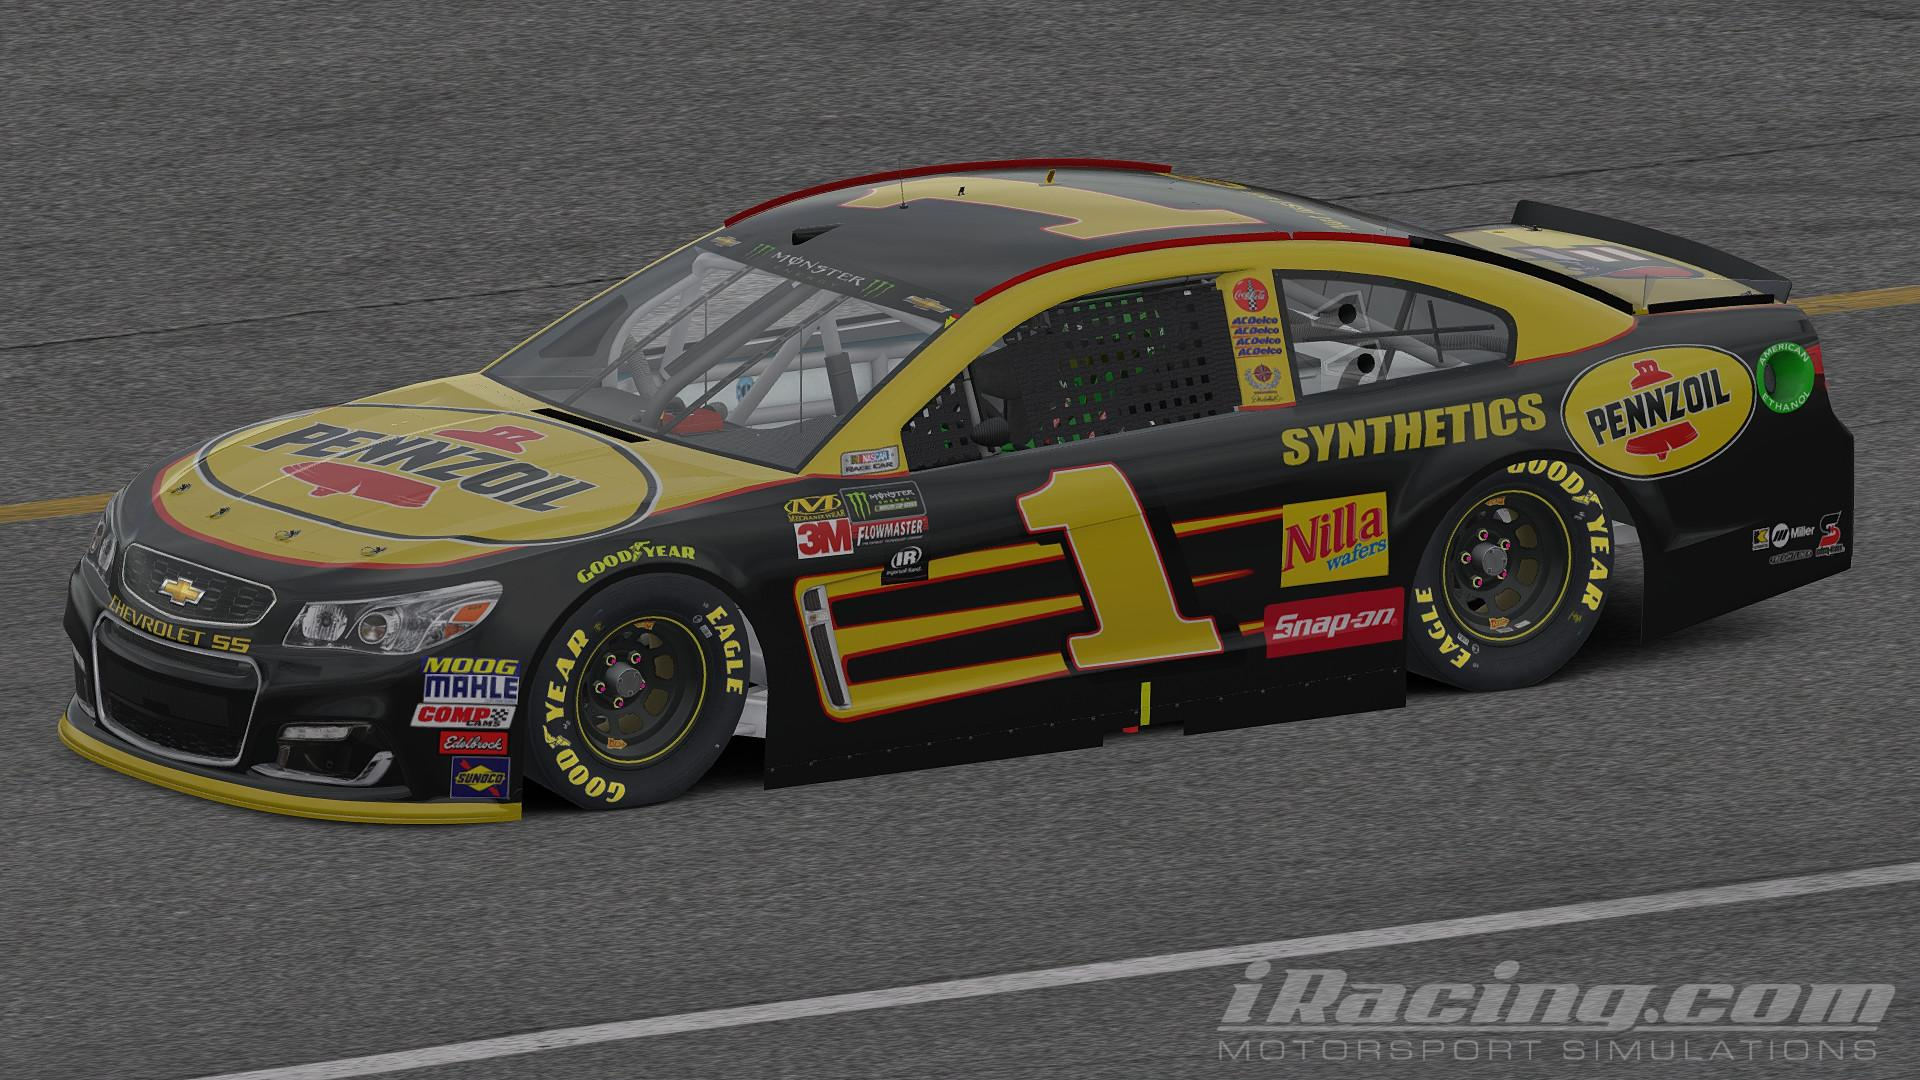 Preview of Pennzoil Synthetics  by Scott Pierchorowicz